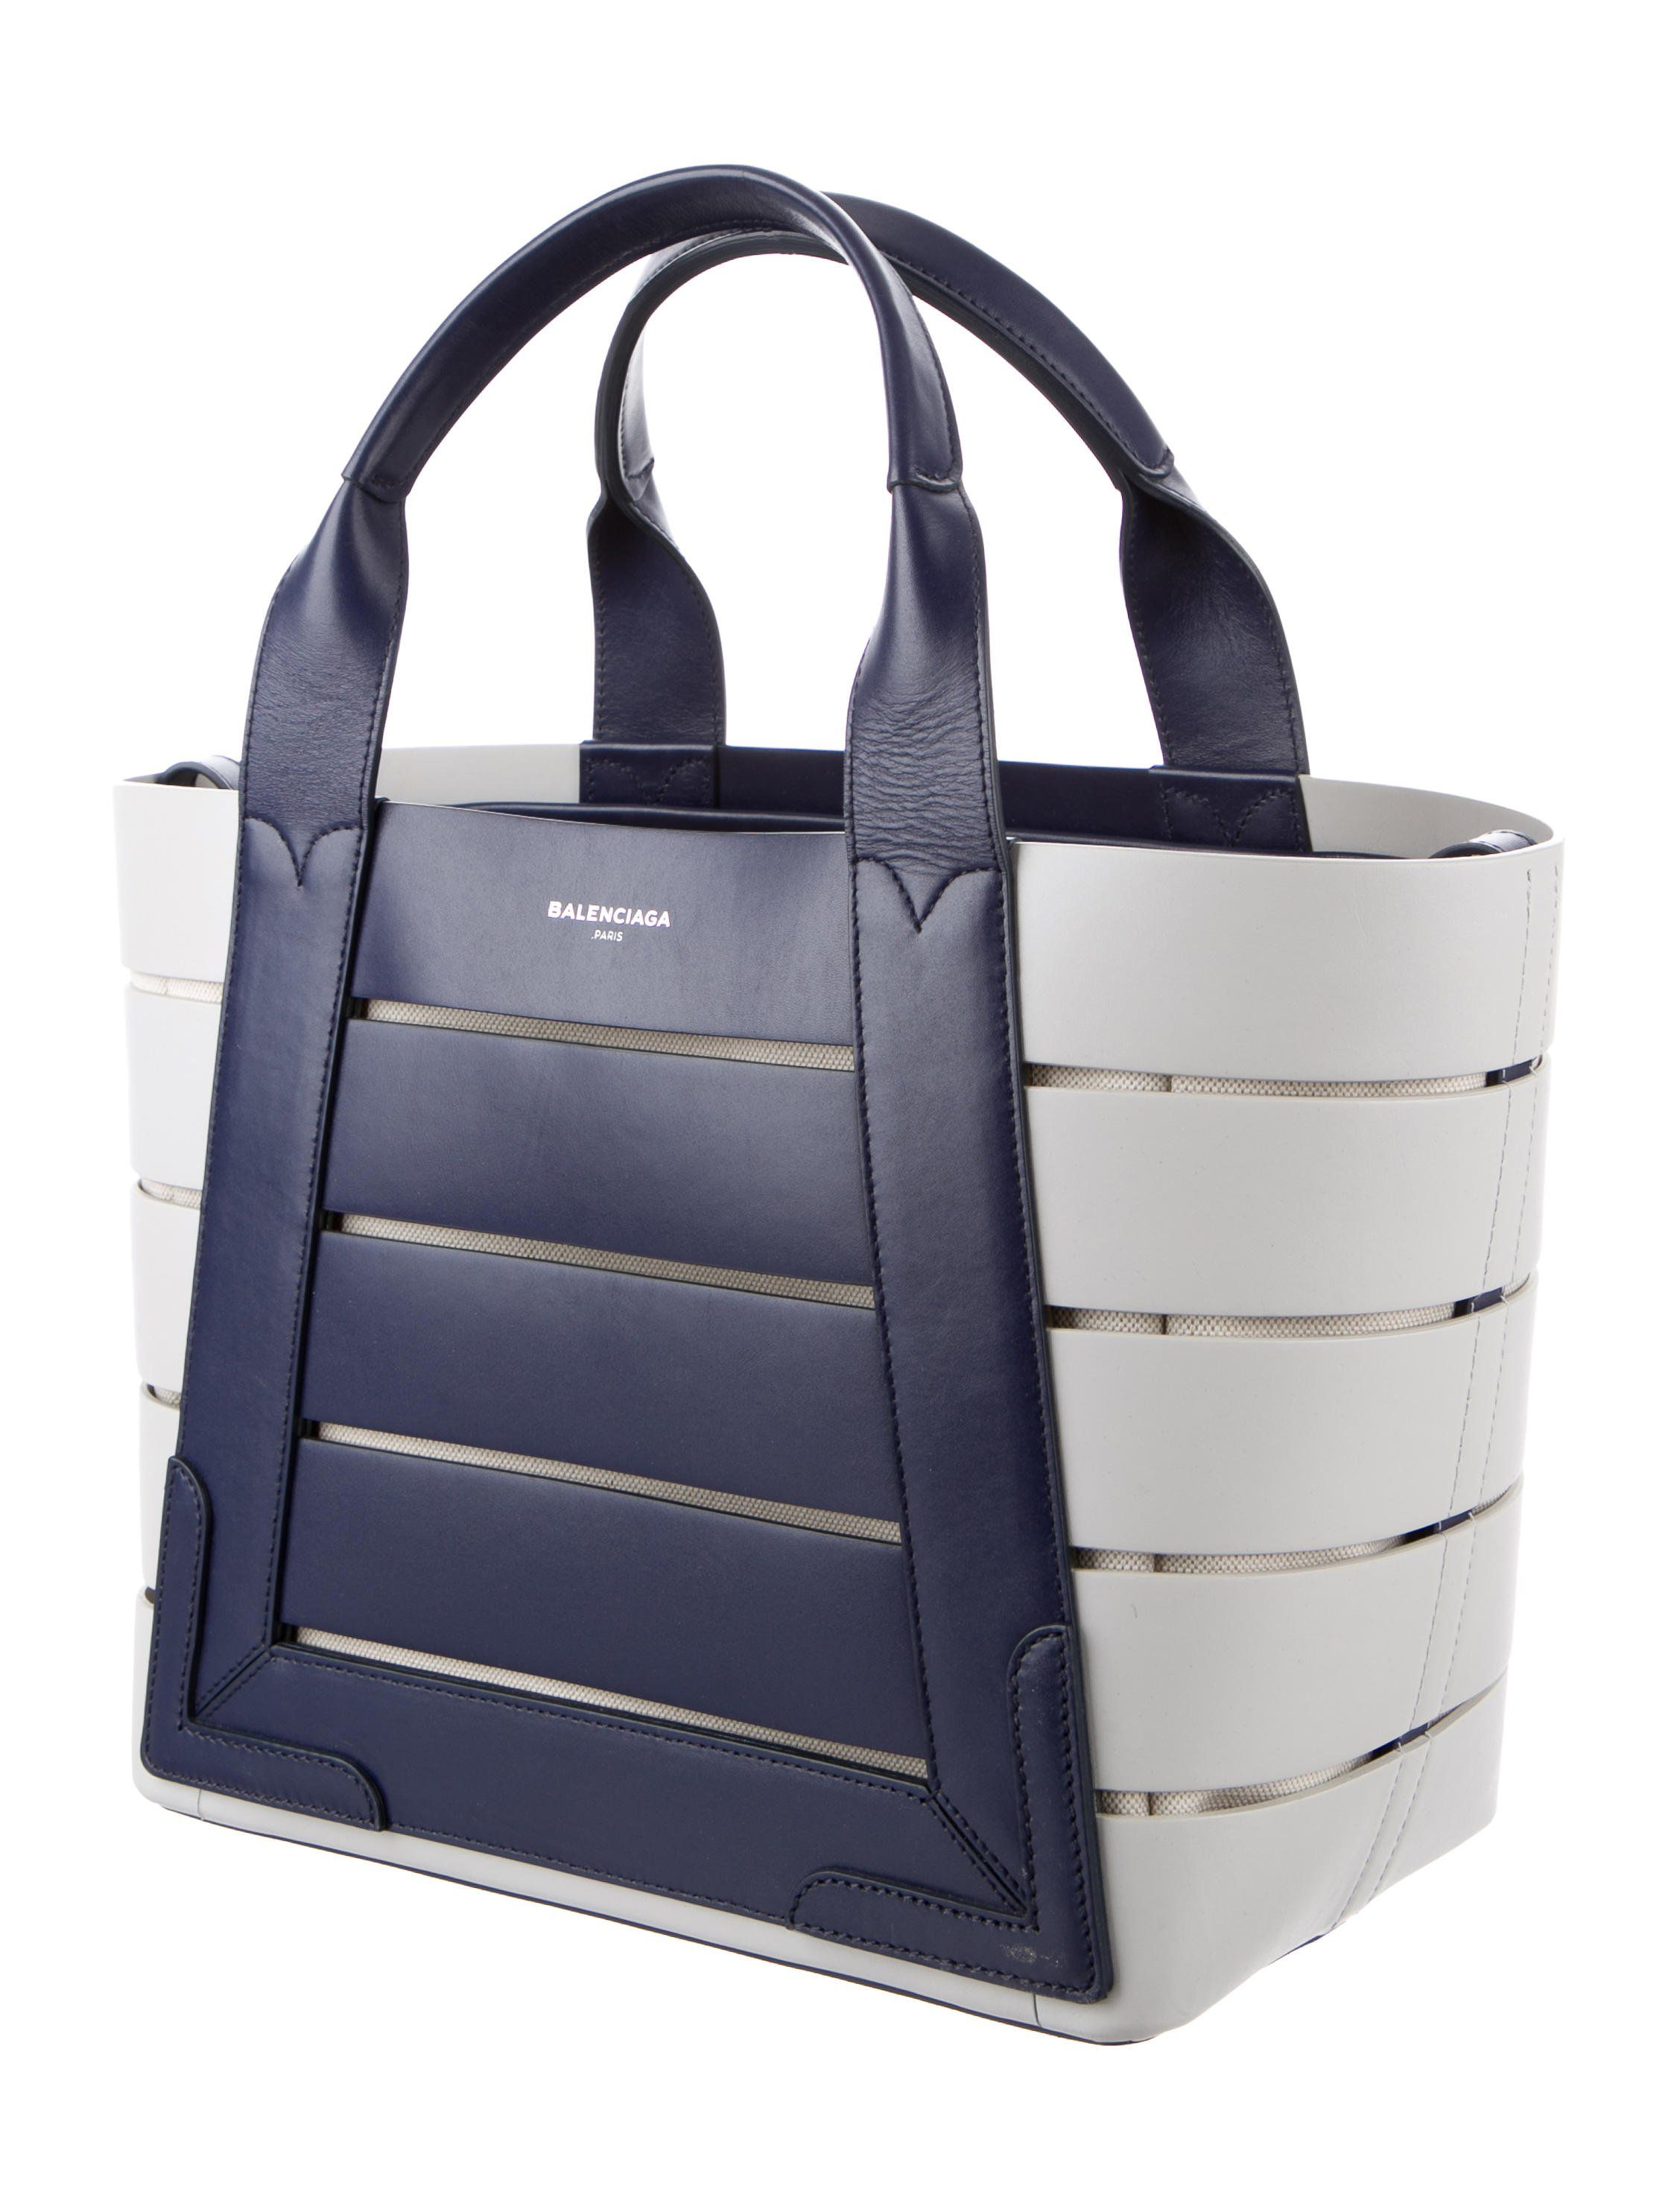 00471930d1 Navy and creme leather Balenciaga Small Cabas tote with silver-tone  hardware, dual flat top handles, natural canvas lining, single zip pocket  at interior